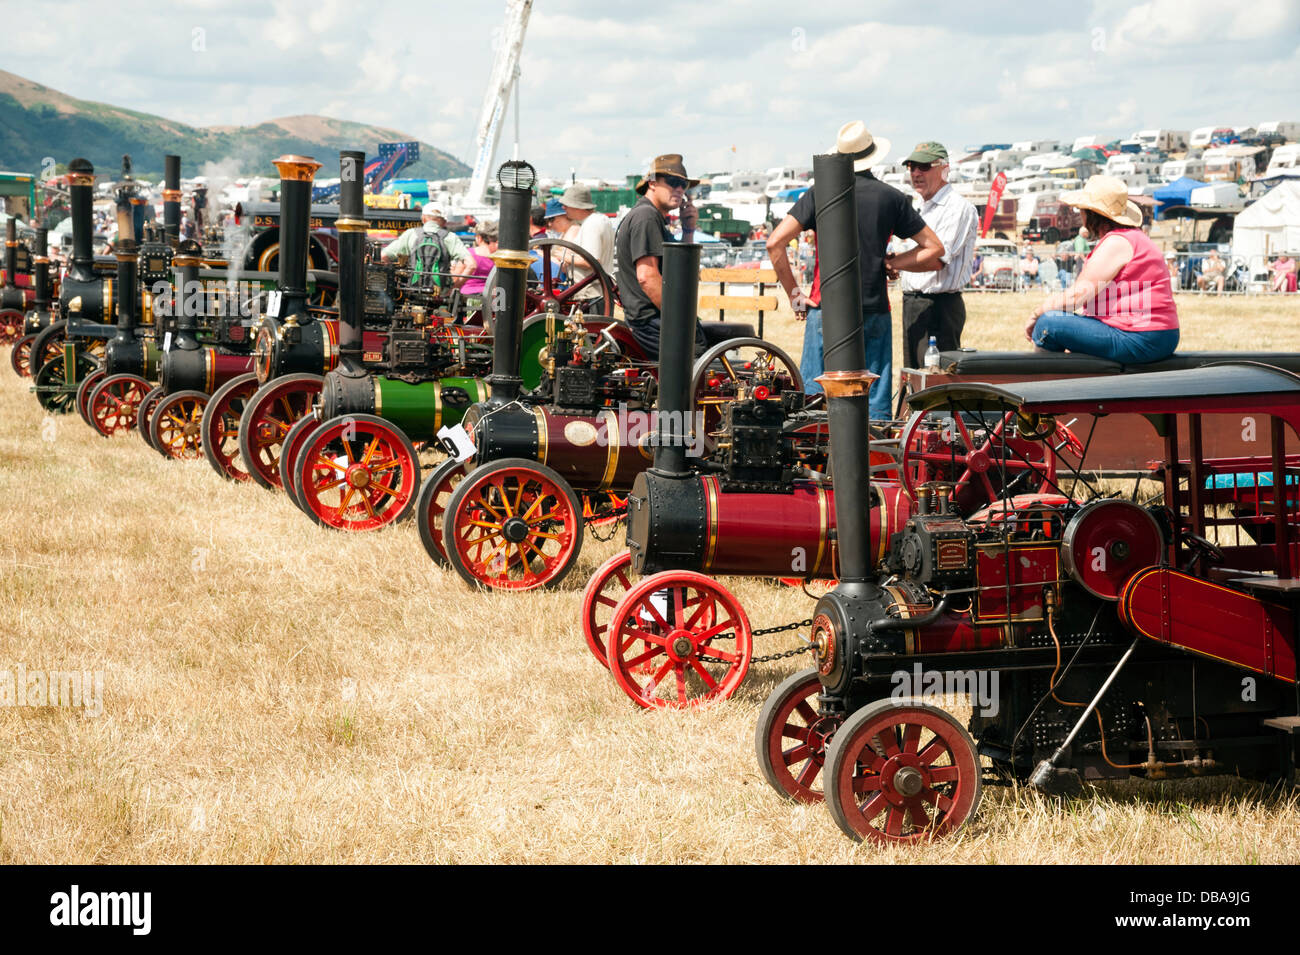 Line up of miniature traction engines at Welland steam rally, near the Malvern Hills, Worcestershire, UK. - Stock Image